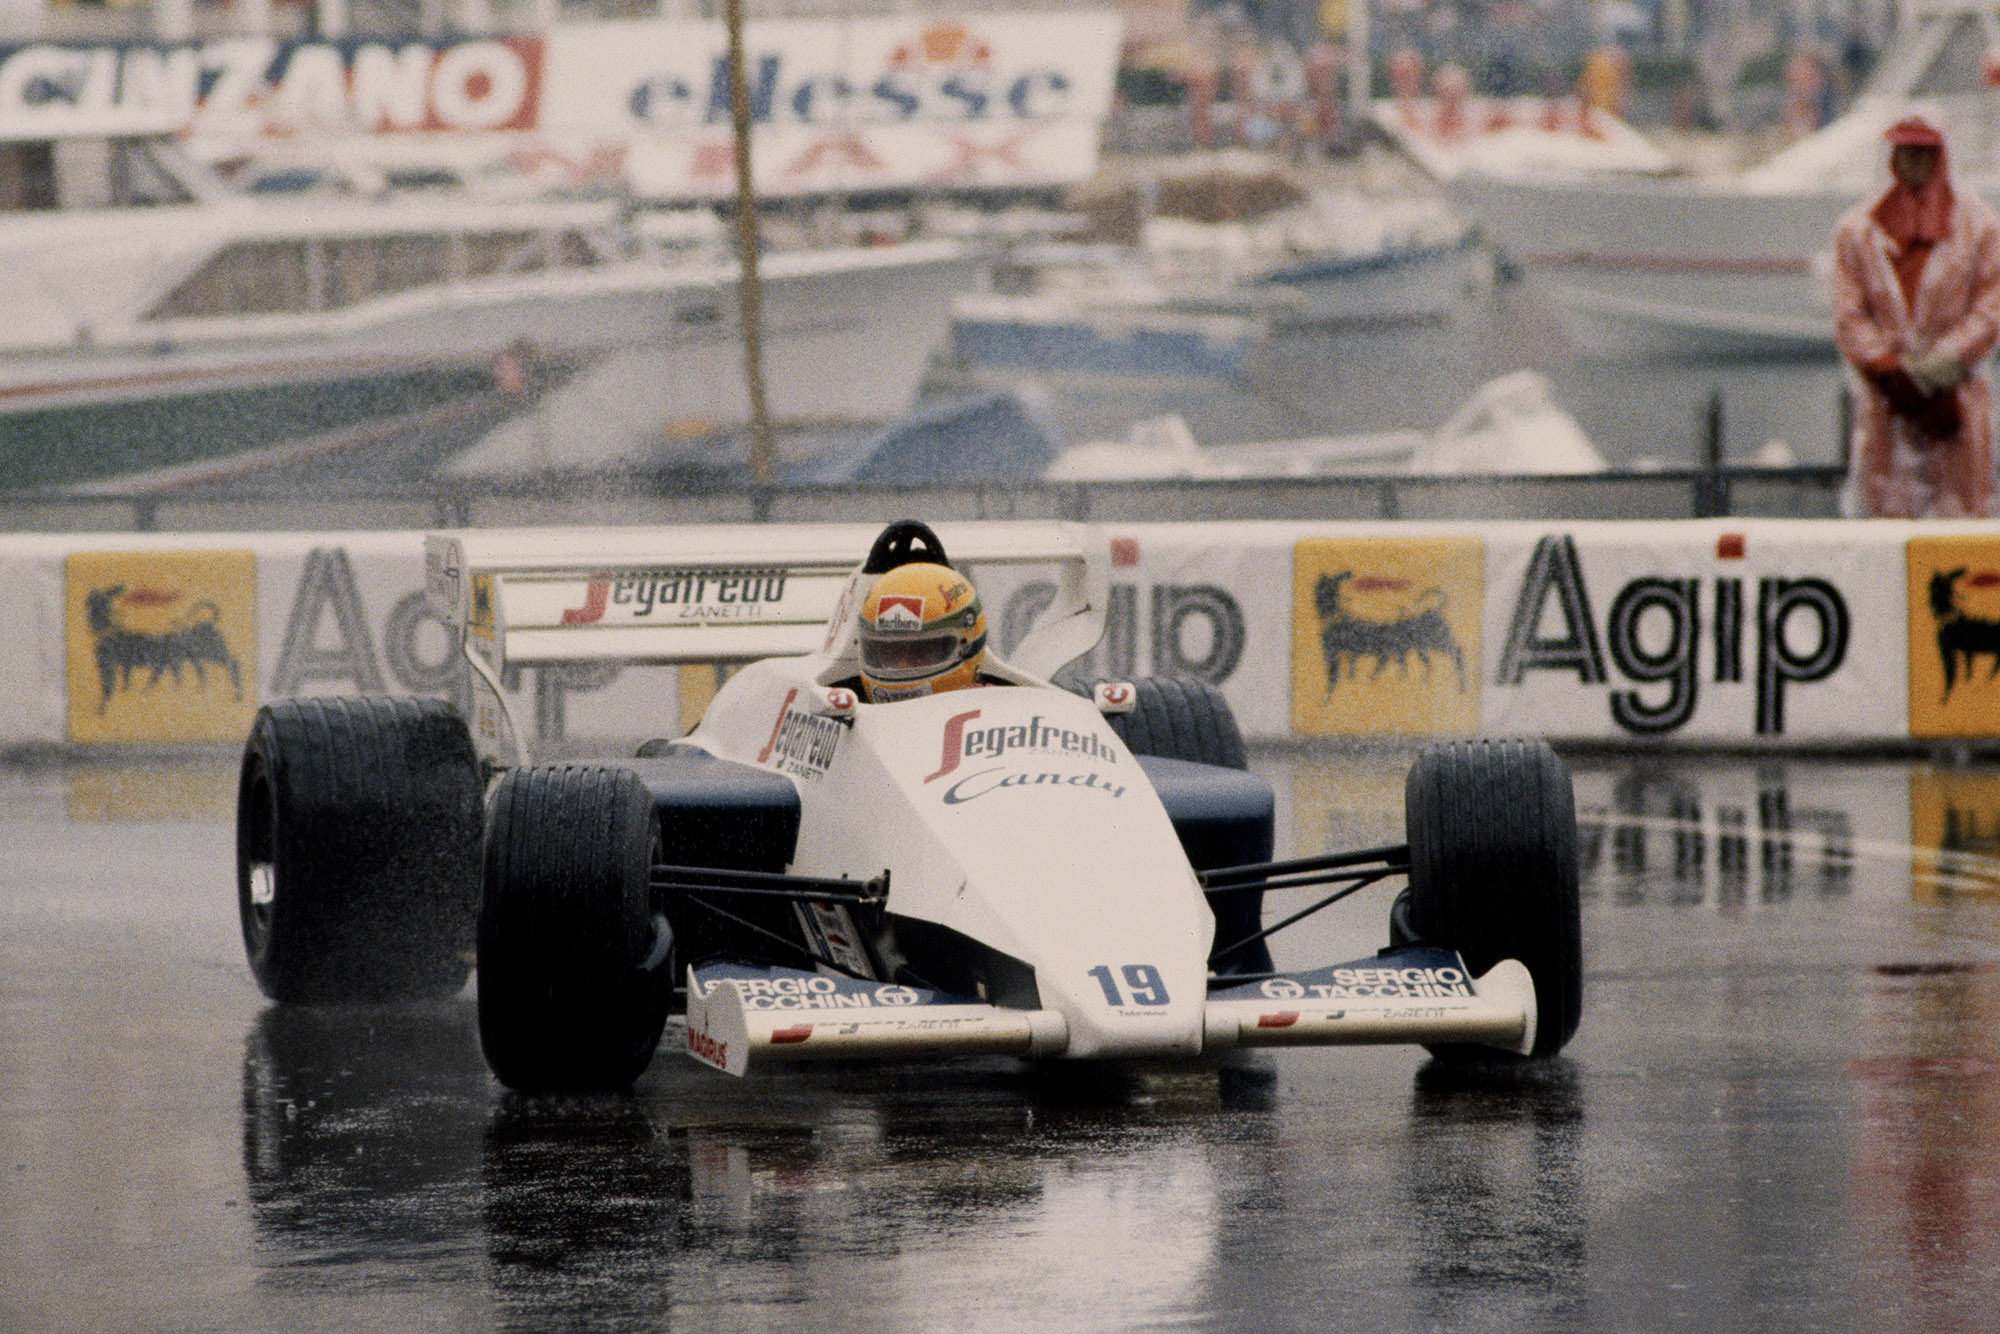 Ayrton Senna during the 1984 Monaco Grand Prix